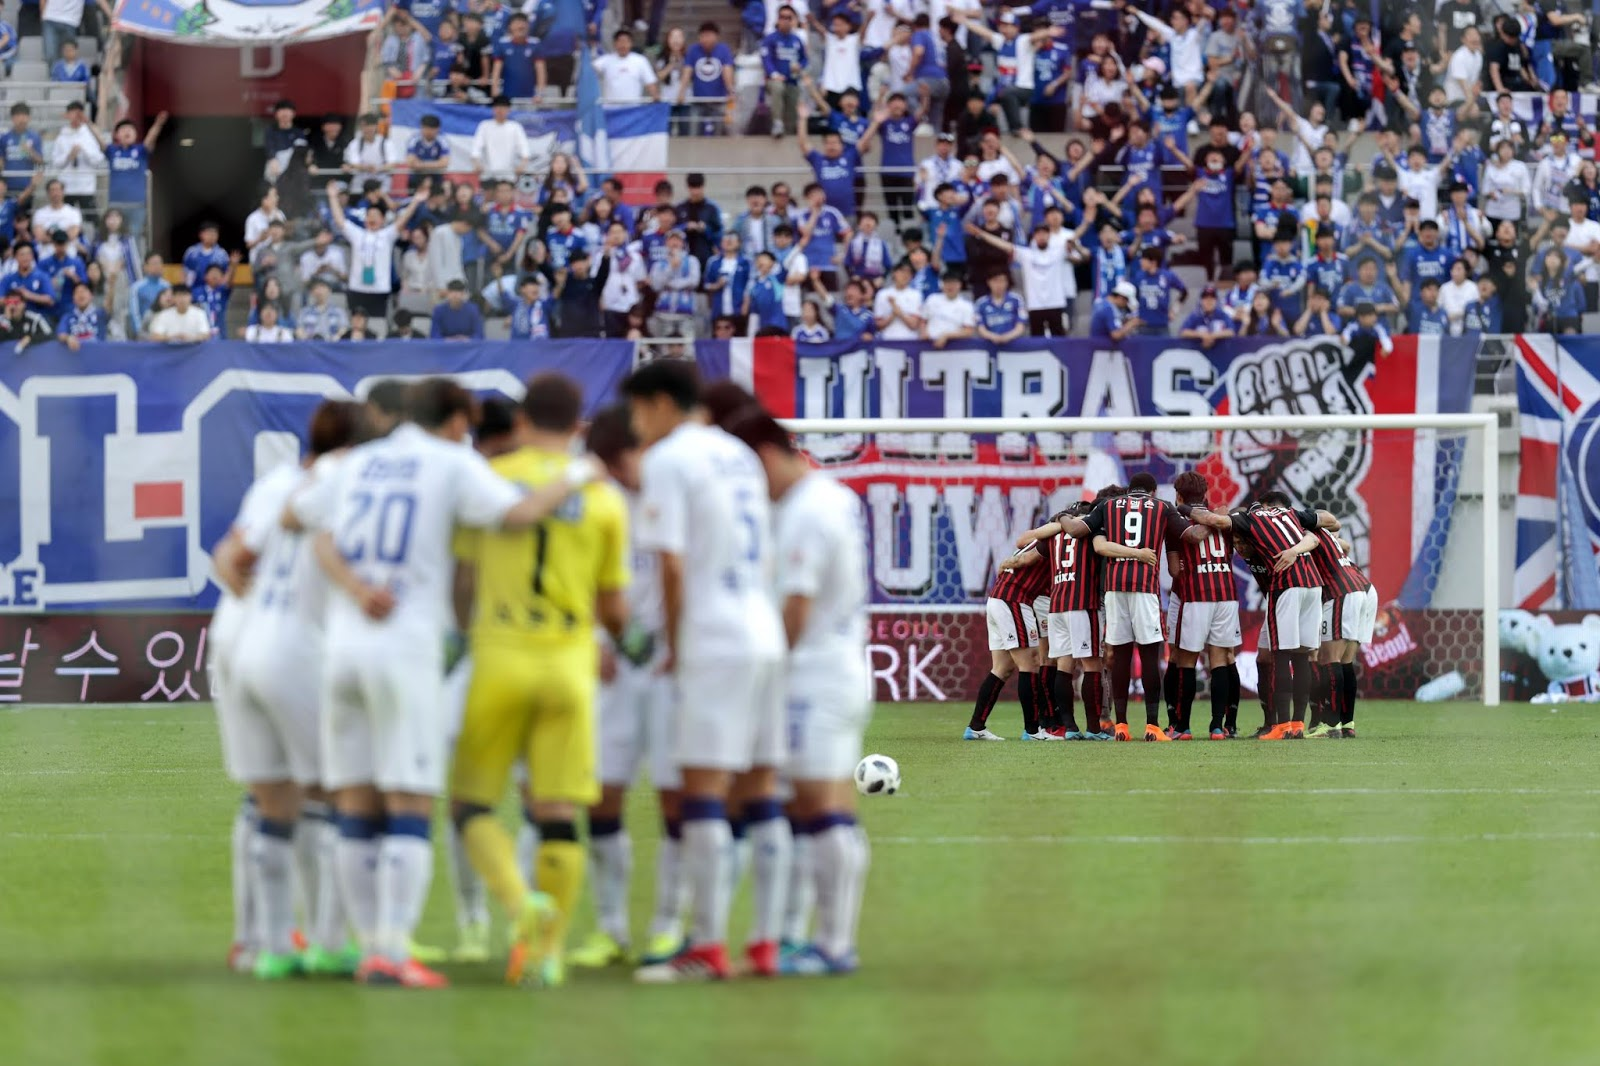 K League 1 Super Match Preview: Suwon Samsung Bluewings vs FC Seoul